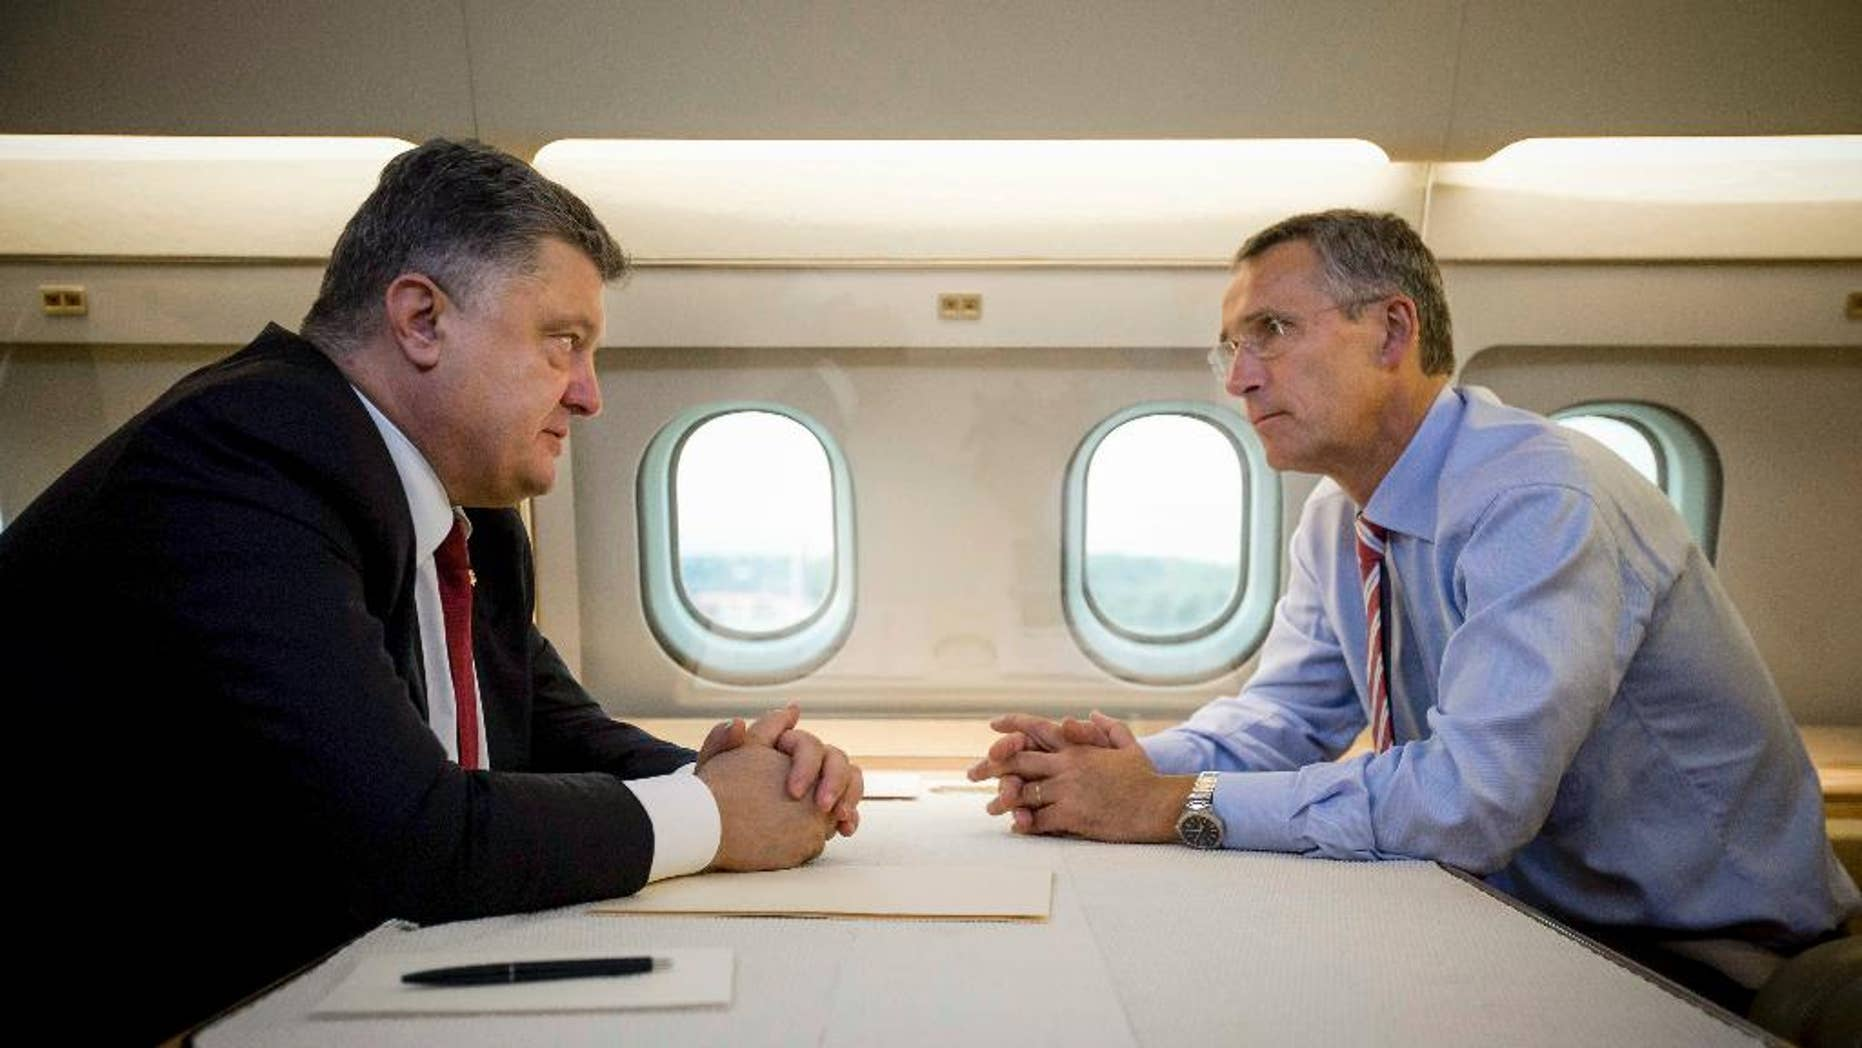 Ukrainian President Petro Poroshenko, left, and NATO Secretary General Jens Stoltenberg talk in a helicopter on the way to a military training ground outside Lviv, western Ukraine, Monday, Sept. 21, 2015. Stoltenberg arrived in Ukraine for NATO-Ukraine joint exercises. (Mikhail Palinchak, Pool Photo via AP )